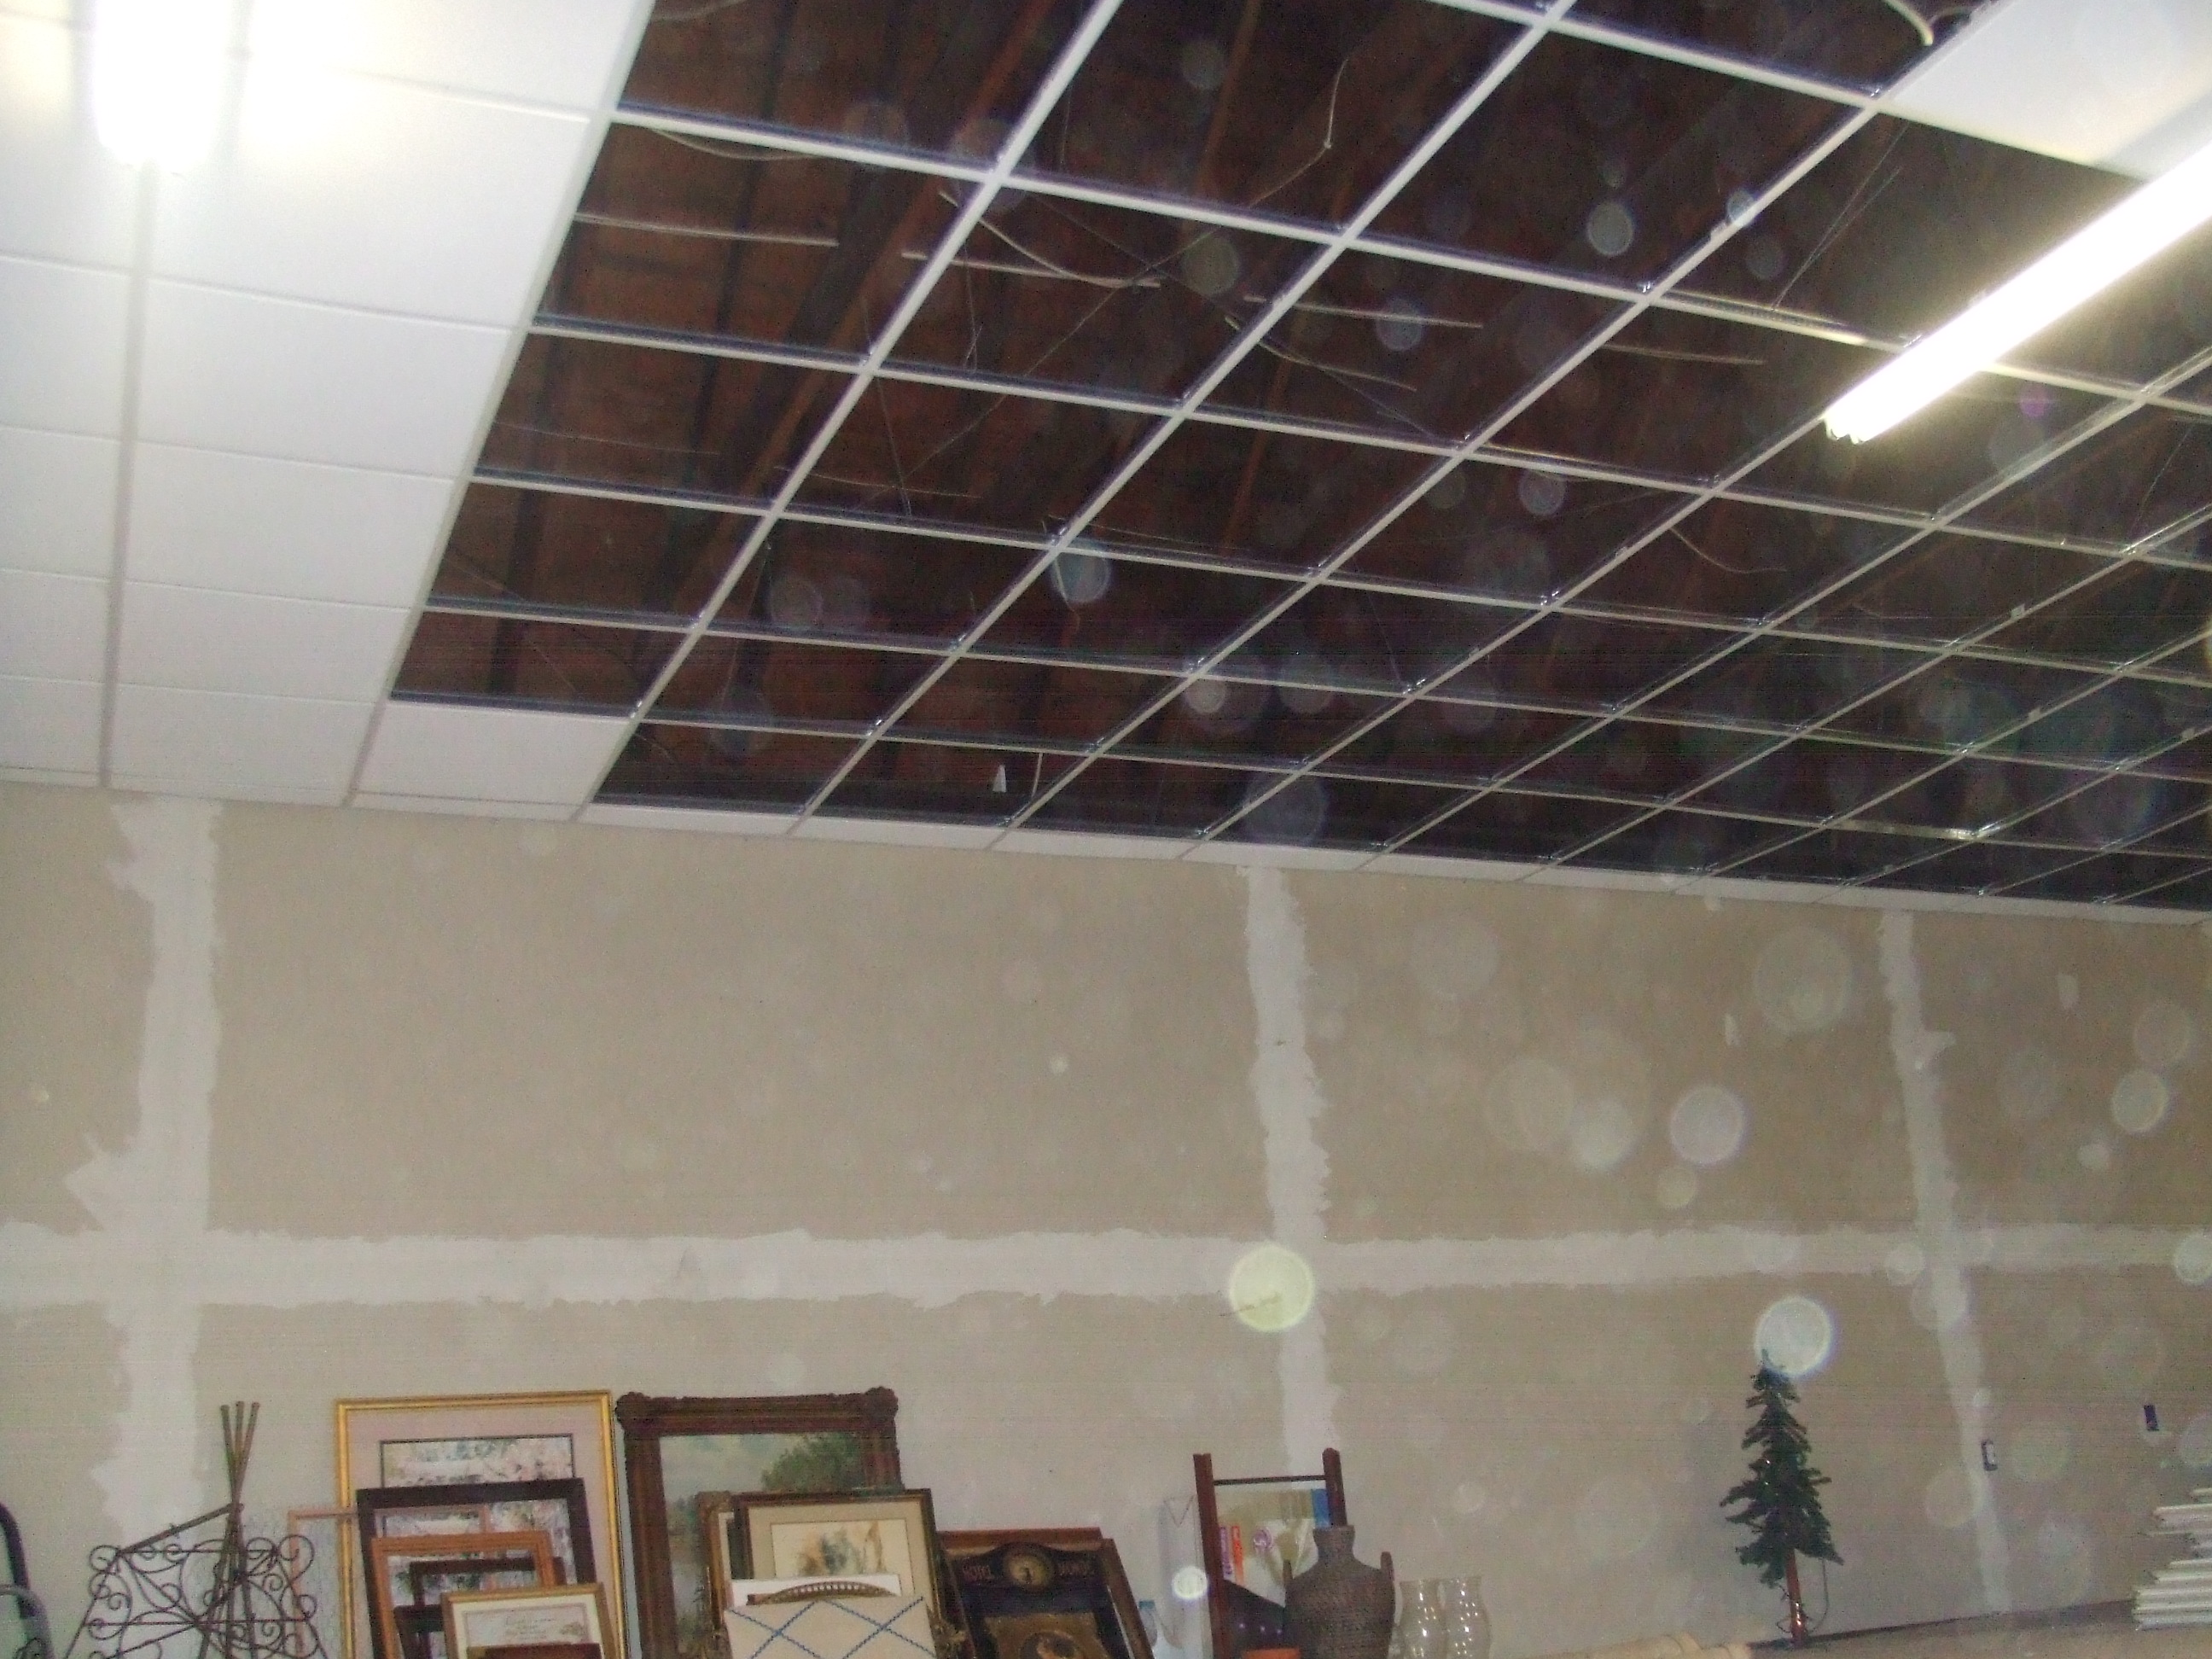 Drop in ceiling (were they serious?)